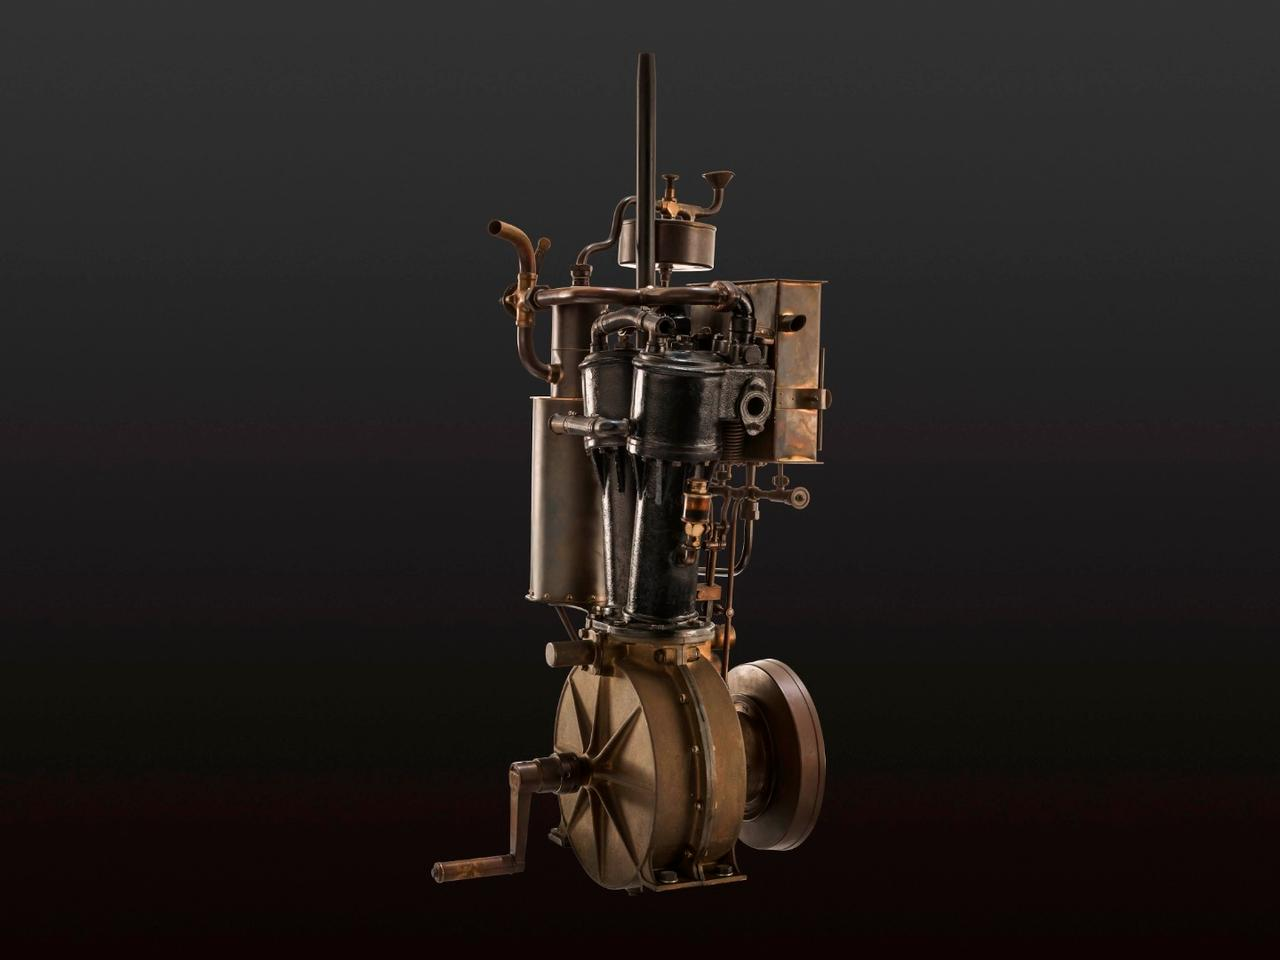 Daimler two-cylinder V-engine from 1889. These engines powered the winning vehicles in the first car competition in history 125 years ago